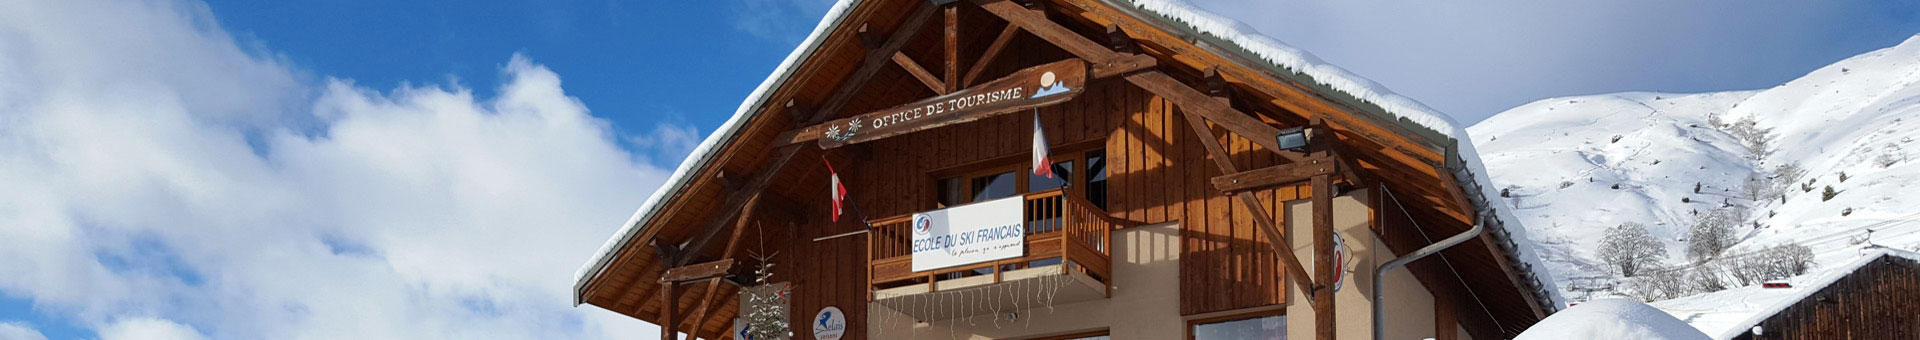 Station Village > Office de Tourisme > tetiere